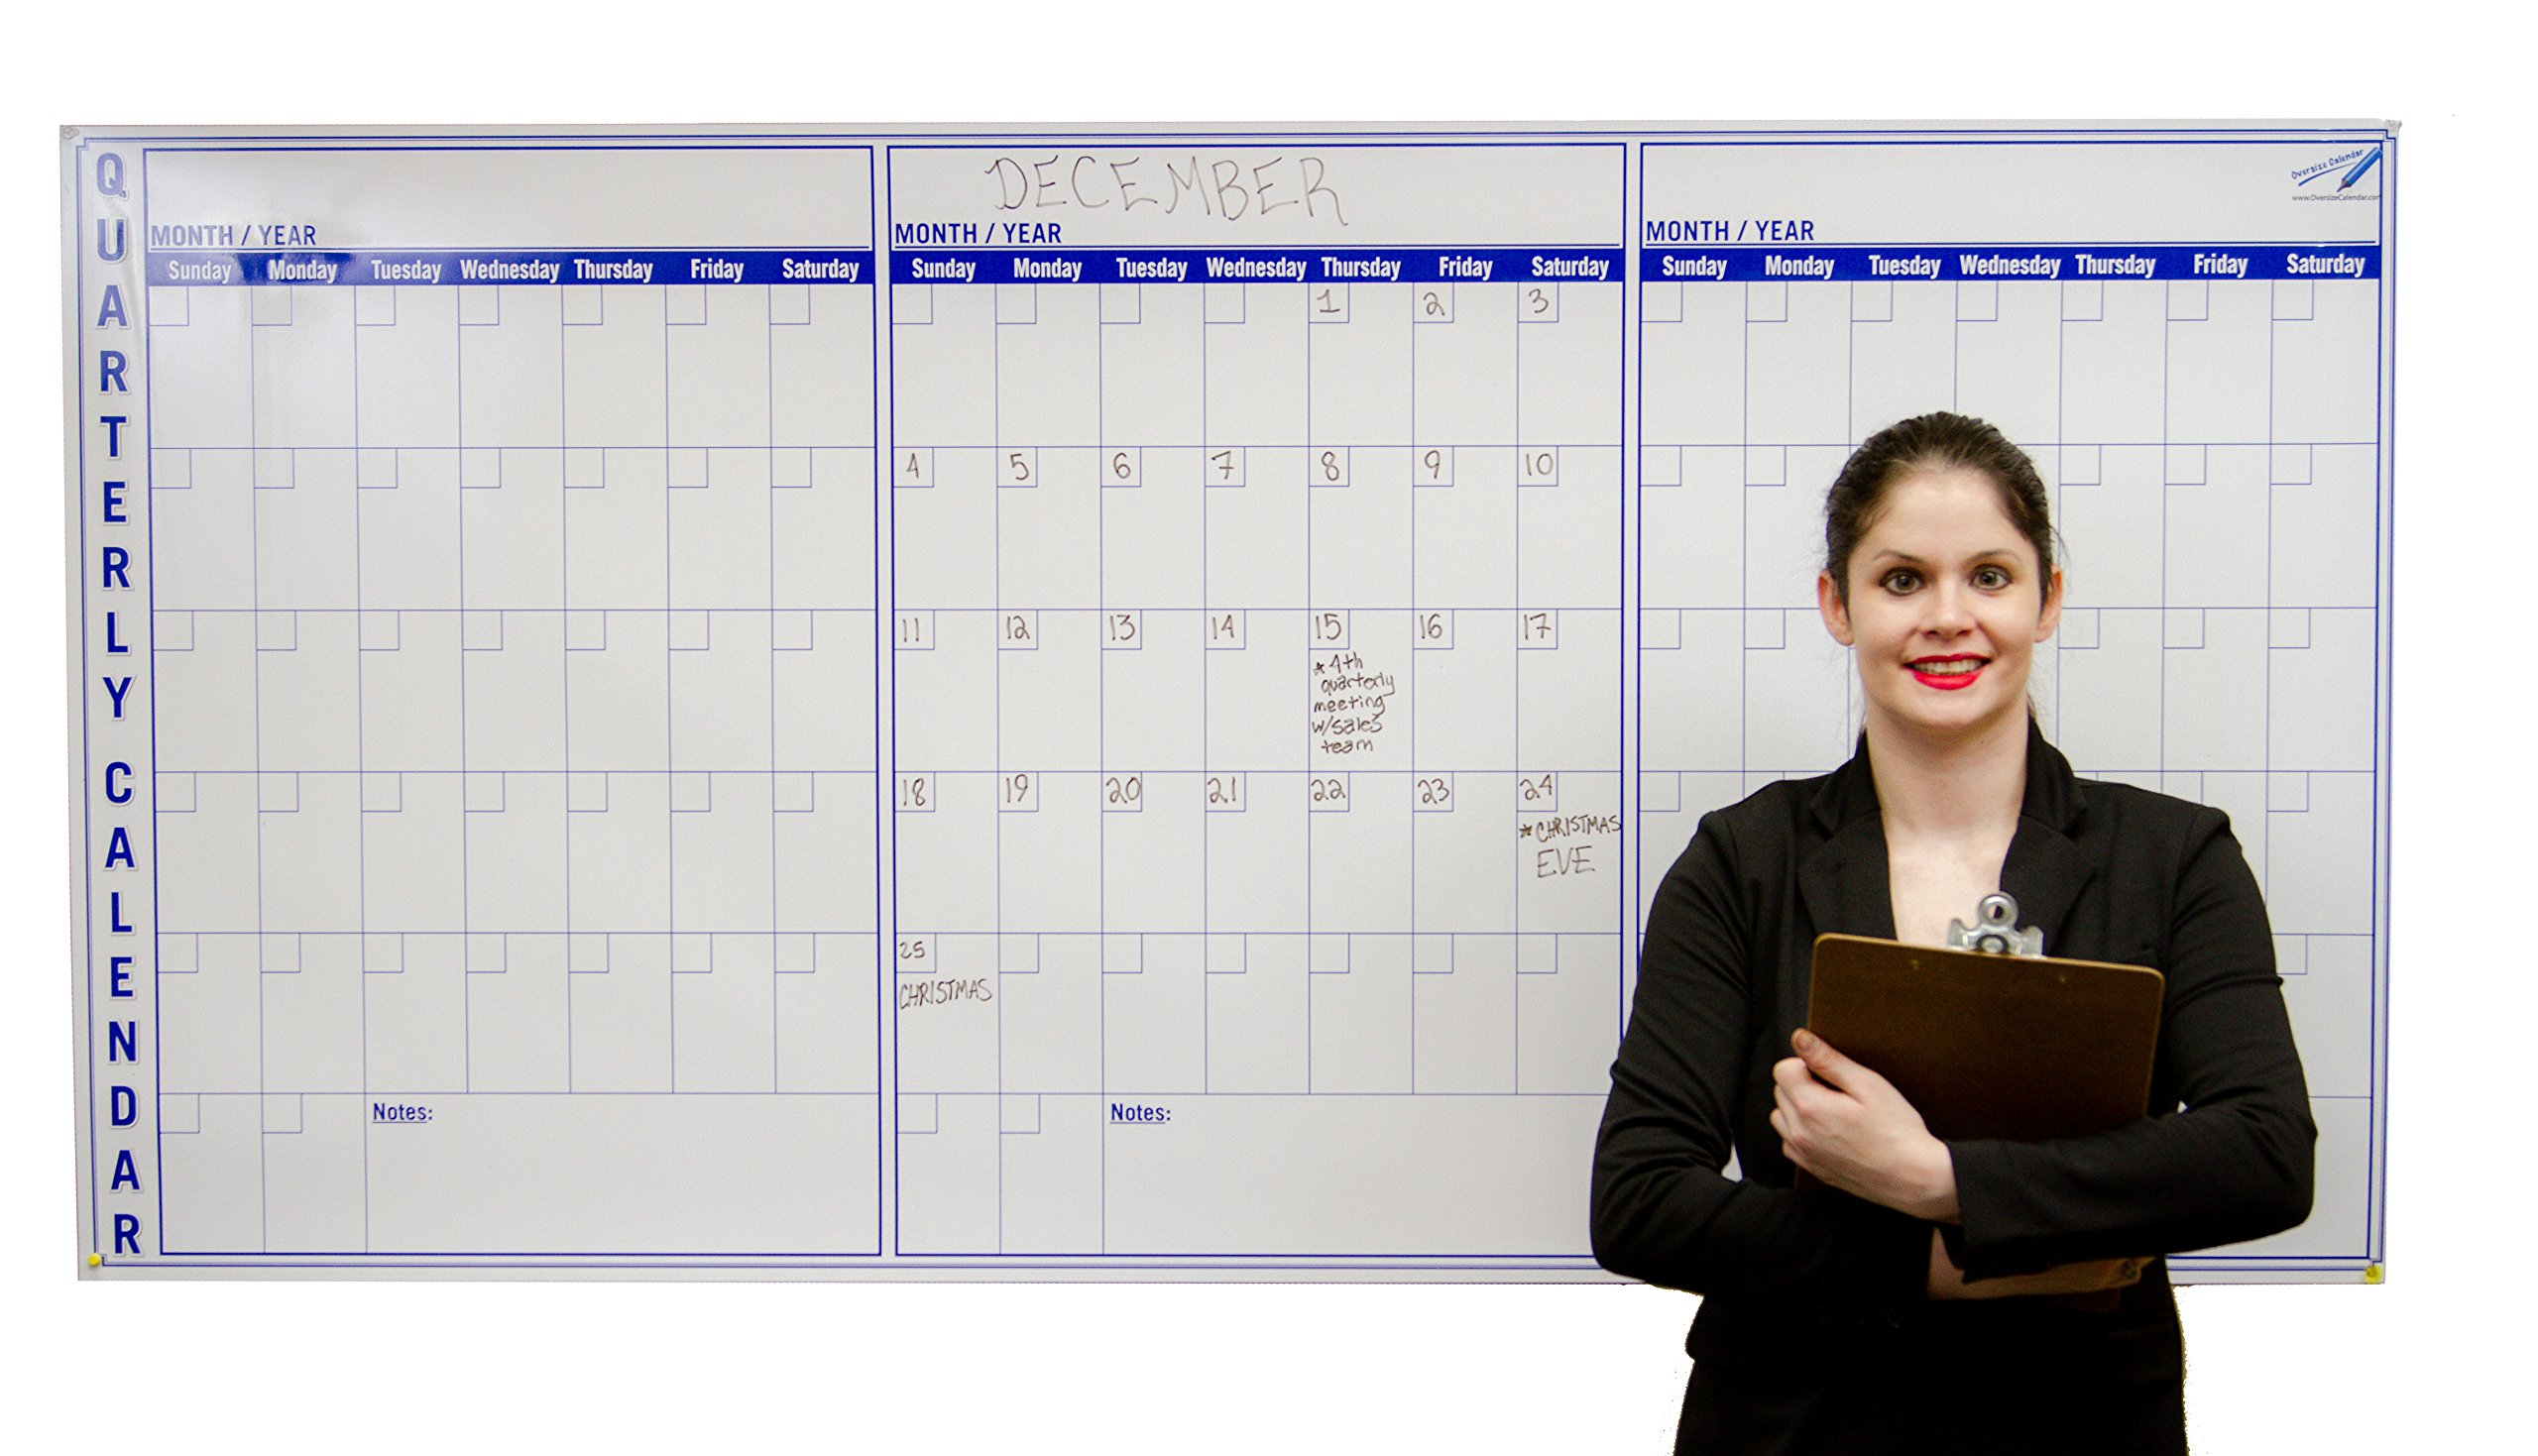 Large Dry Erase Wall Calendar 3 Month - 36 x 72 inch Big Calendar for Wall - Quarterly Office Wall Calendars by Oversize Planner by ABI Digital Solutions